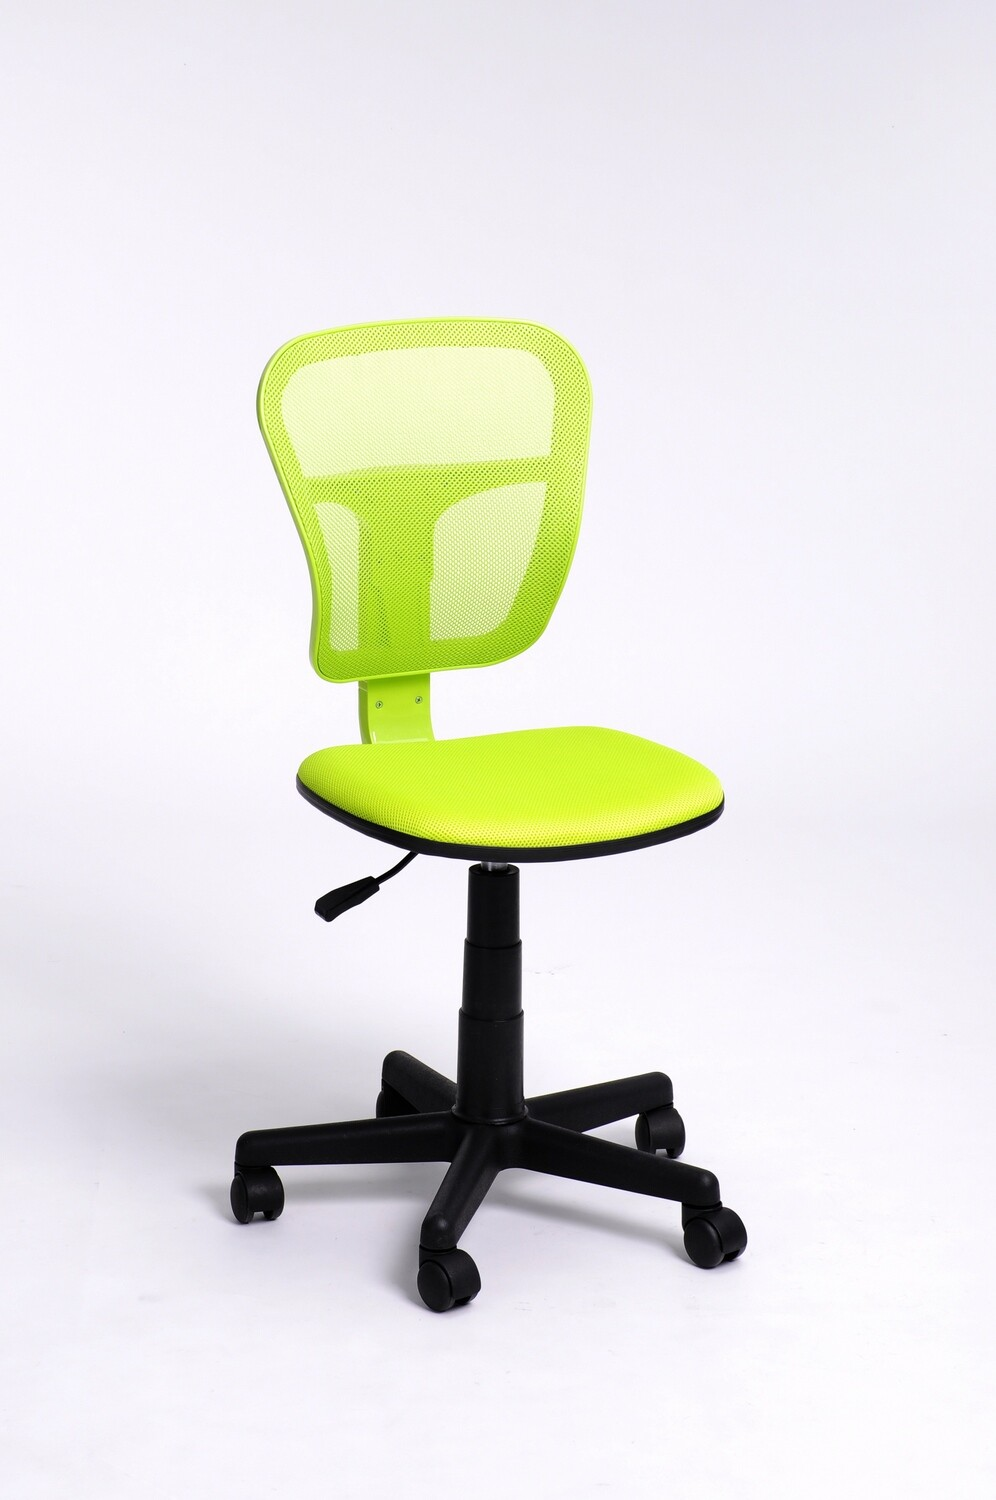 Adjustable Office Chair w/o Armrest (Flying Green)